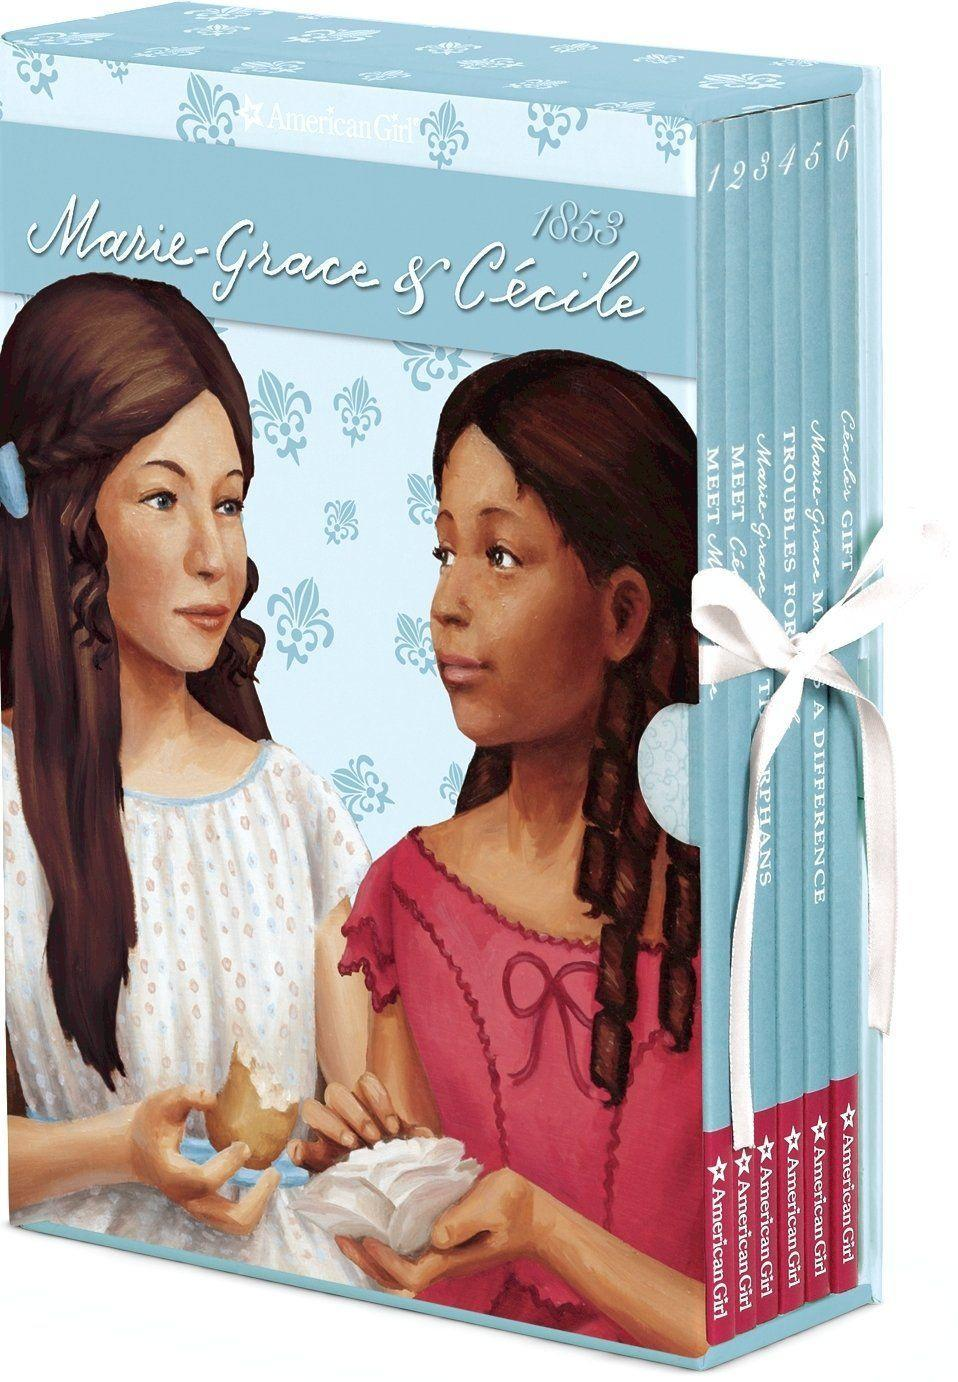 <p>Now retired, this pair of dolls were released as equals (instead of the typical main character and best friend sidekick doll). This duo of friends lives in New Orleans in the 1850s. Together, these friends cope with the yellow fever that is ravaging their community. Cécile speaks French and was only the second Black character made by American Girl.</p>